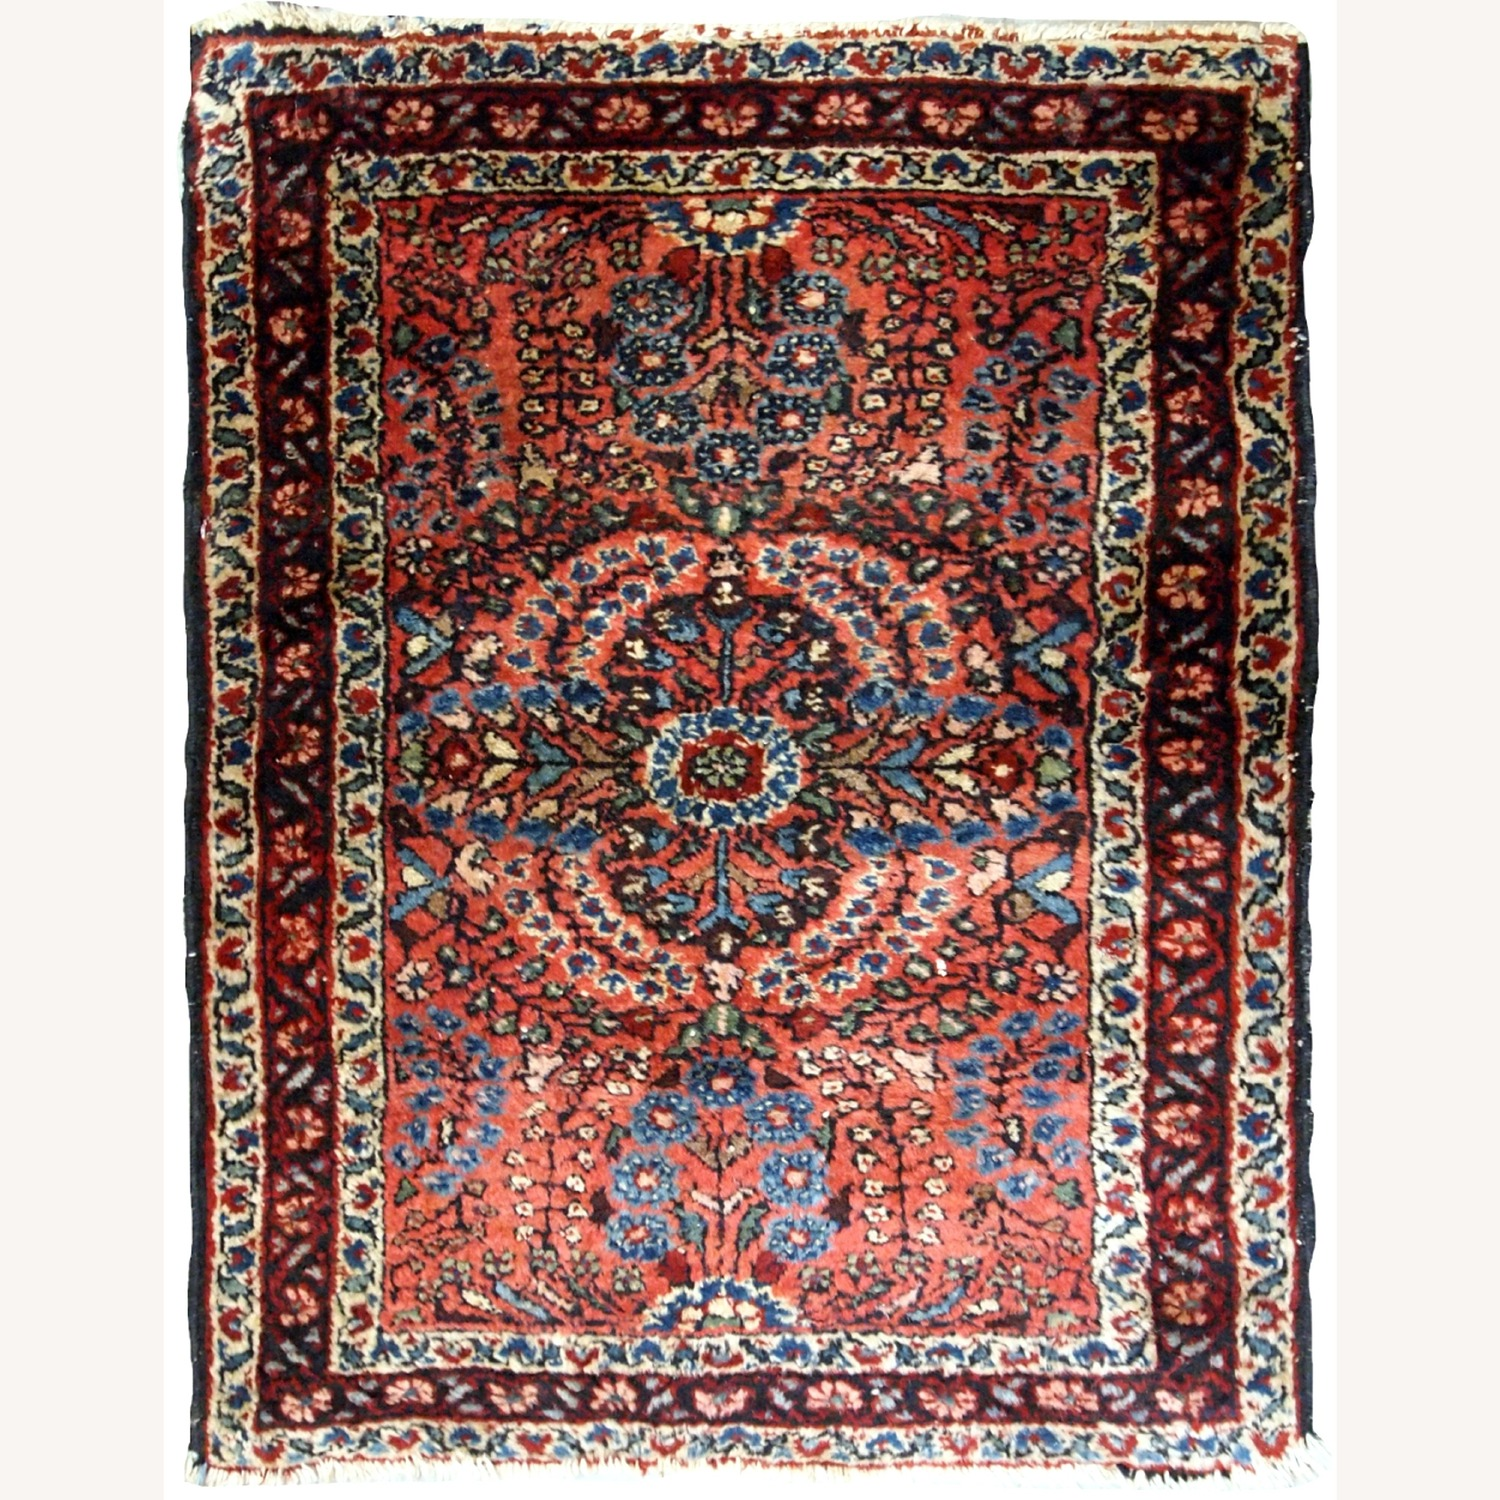 Handmade Antique Persian Sarouk Rug